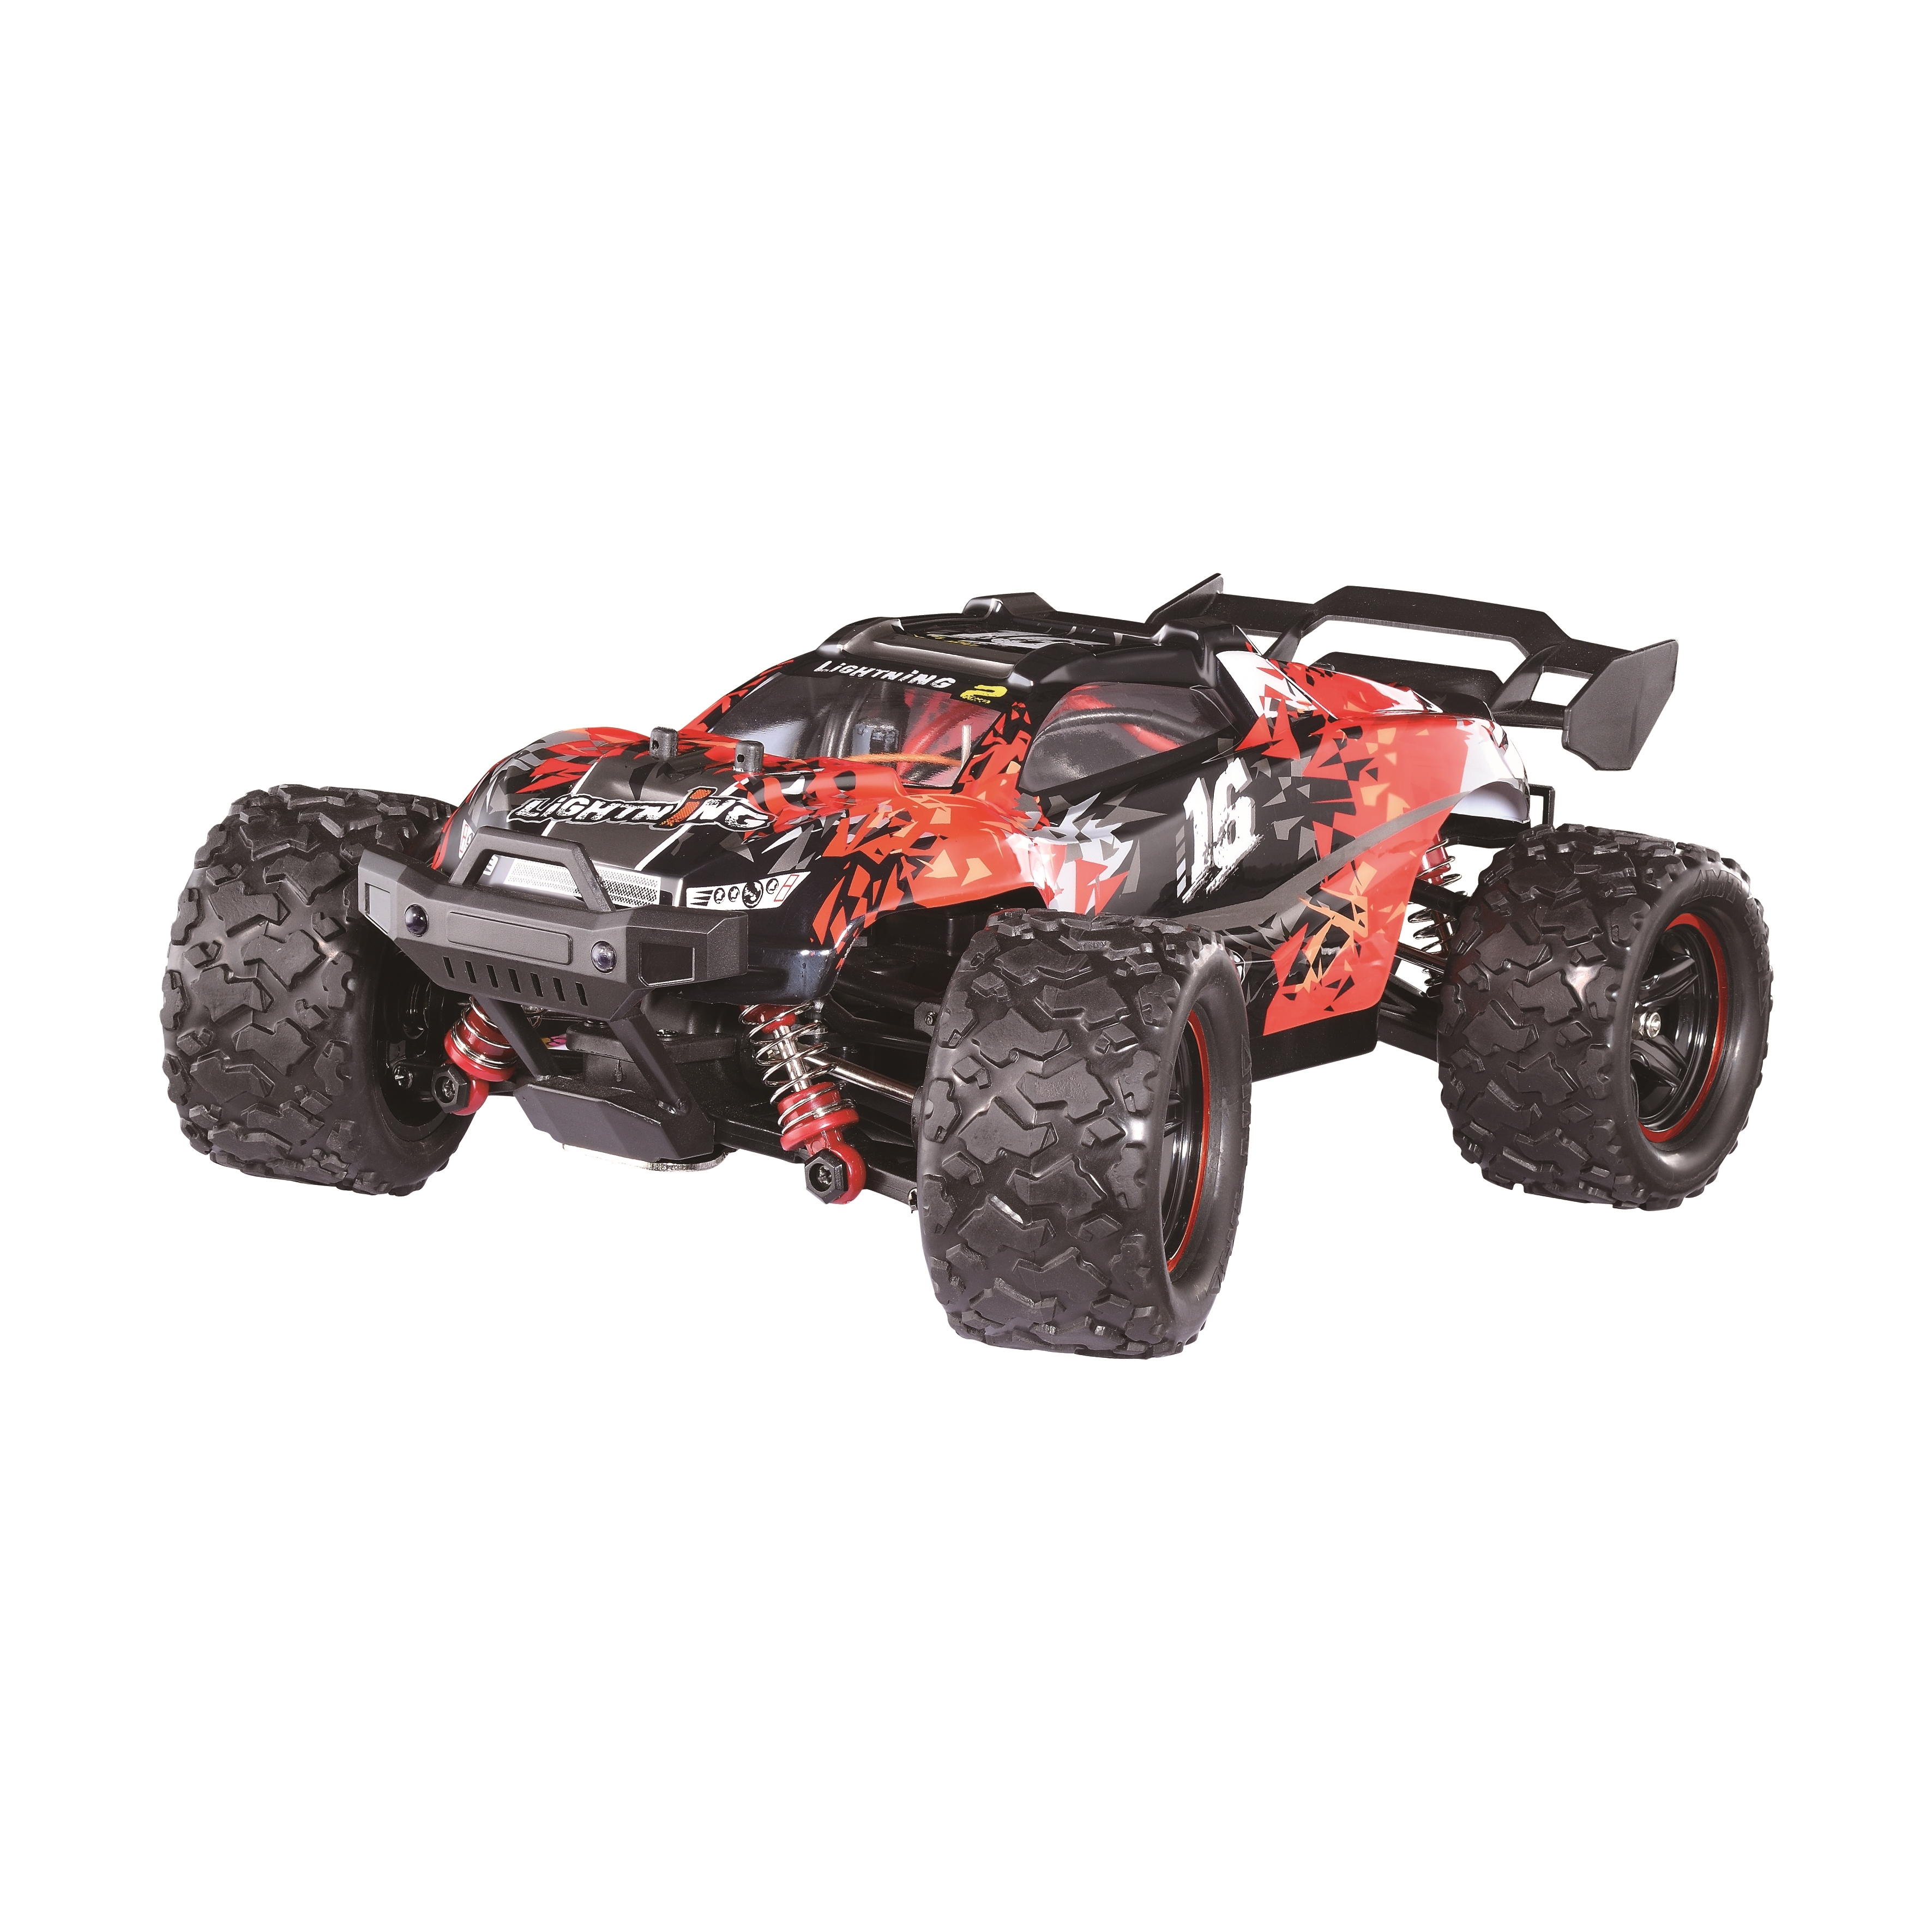 HS 18421 18422 18423 1/18 2.4G Alloy Brushless Off Road High Speed RC Car Vehicle Models Full Proportional Control Red 3 battery